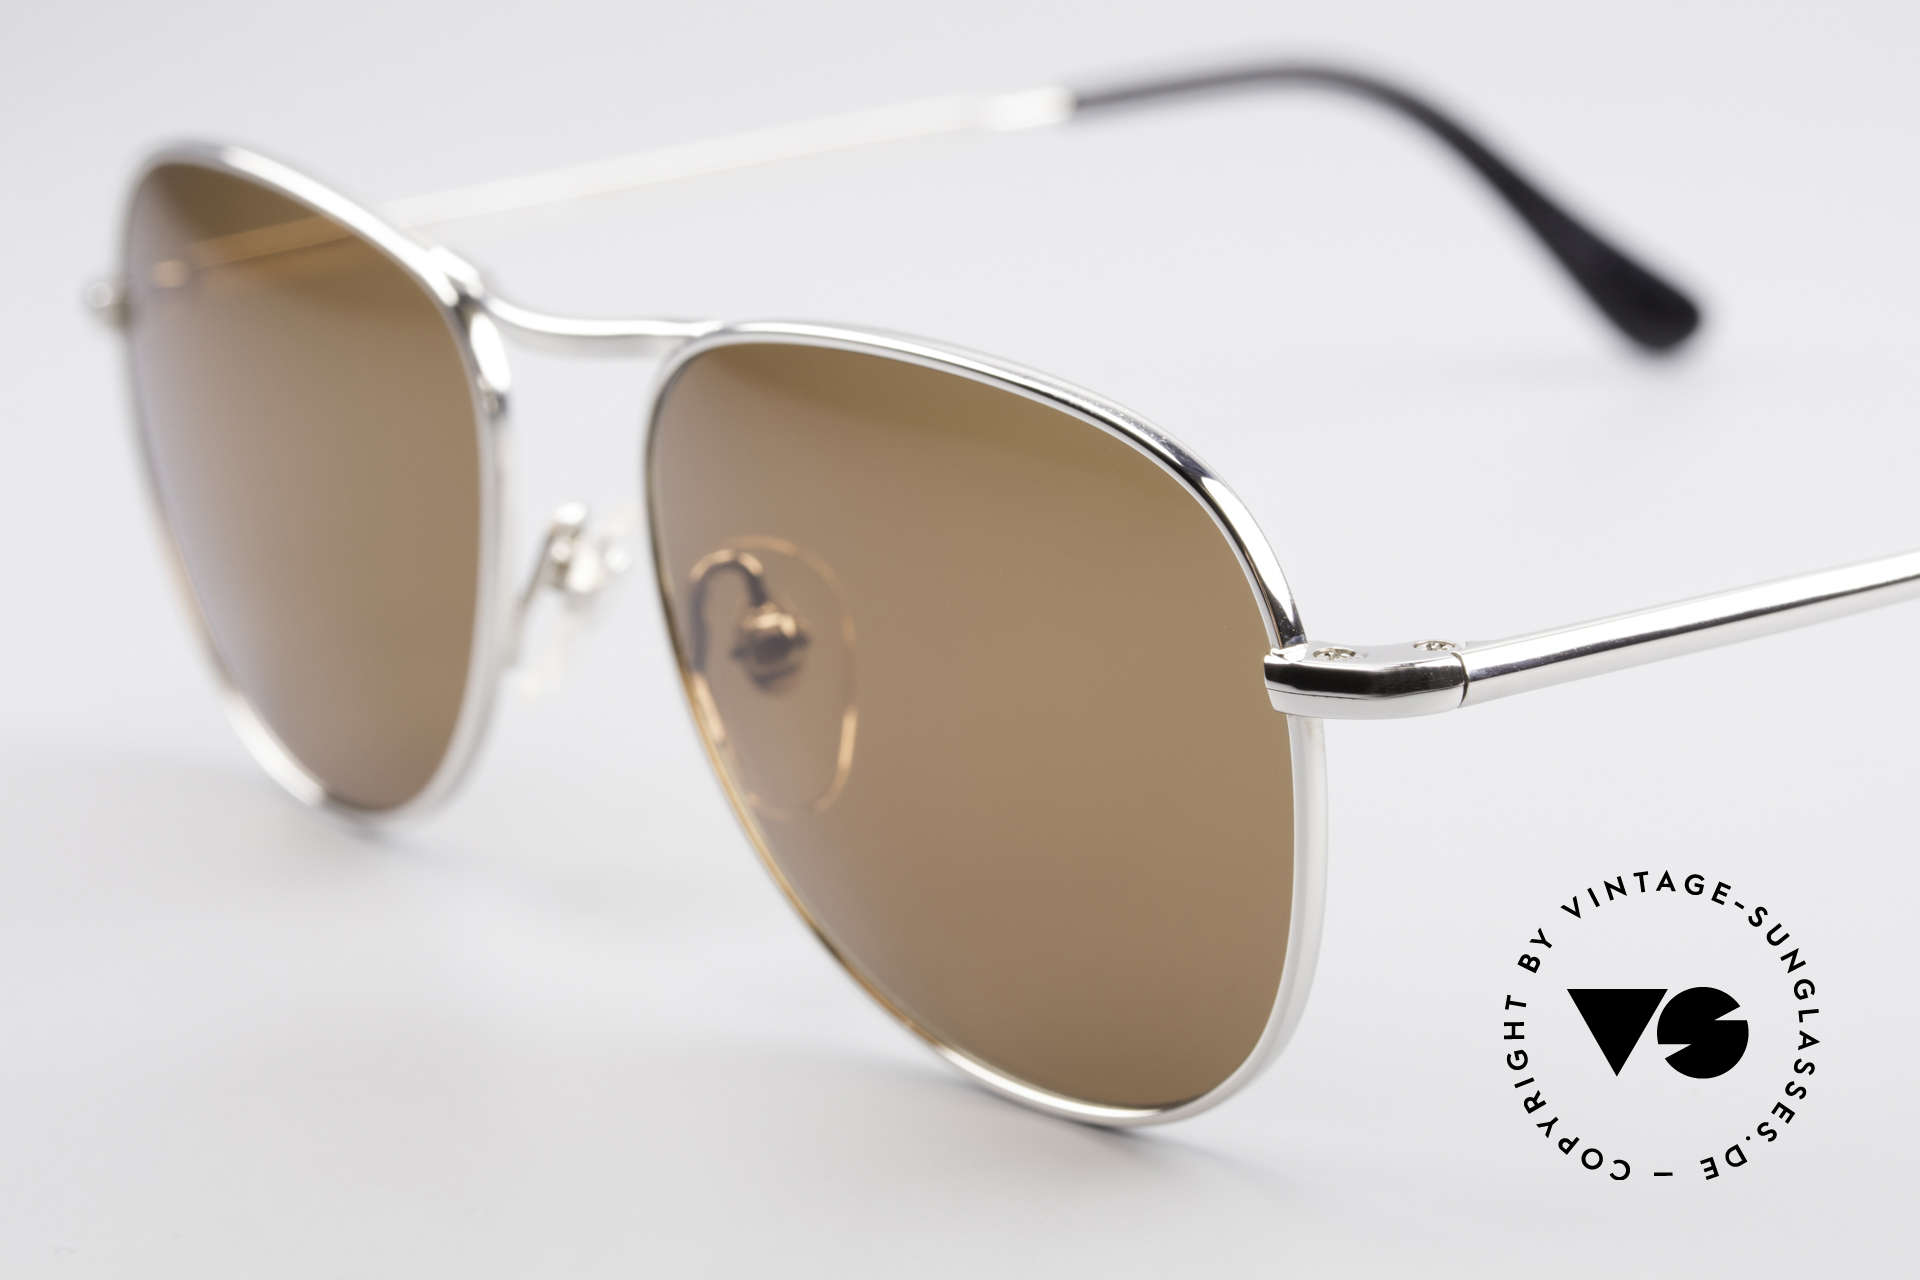 Helmut Lang 21-0006 Titanium Sunglasses Timeless, top-notch quality & very pleasant to wear; lightweight, Made for Men